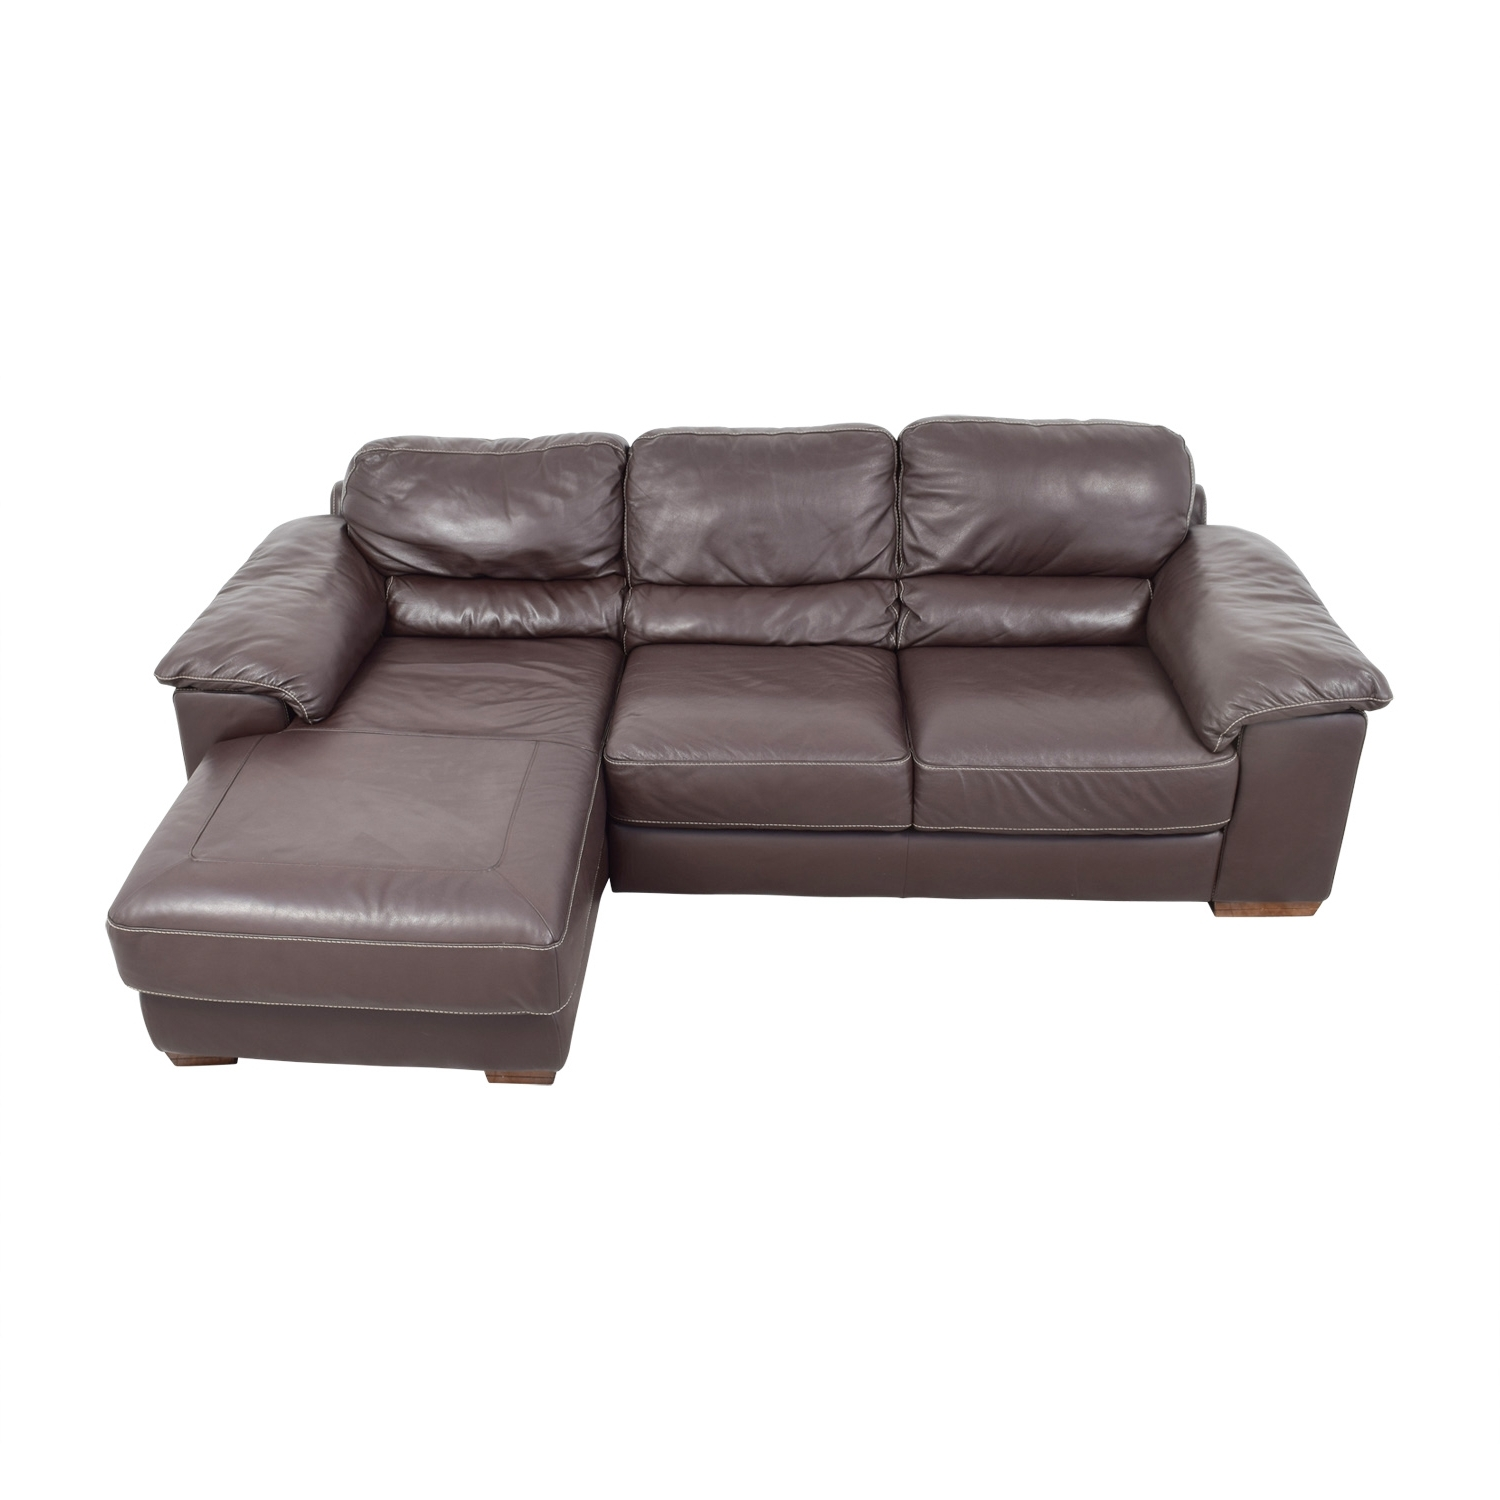 [%65% Off – Raymour & Flanagan Raymour & Flanagan Cindy Crawford With Widely Used Cindy Crawford Sofas|cindy Crawford Sofas Throughout Well Liked 65% Off – Raymour & Flanagan Raymour & Flanagan Cindy Crawford|most Current Cindy Crawford Sofas Regarding 65% Off – Raymour & Flanagan Raymour & Flanagan Cindy Crawford|preferred 65% Off – Raymour & Flanagan Raymour & Flanagan Cindy Crawford Intended For Cindy Crawford Sofas%] (View 19 of 20)